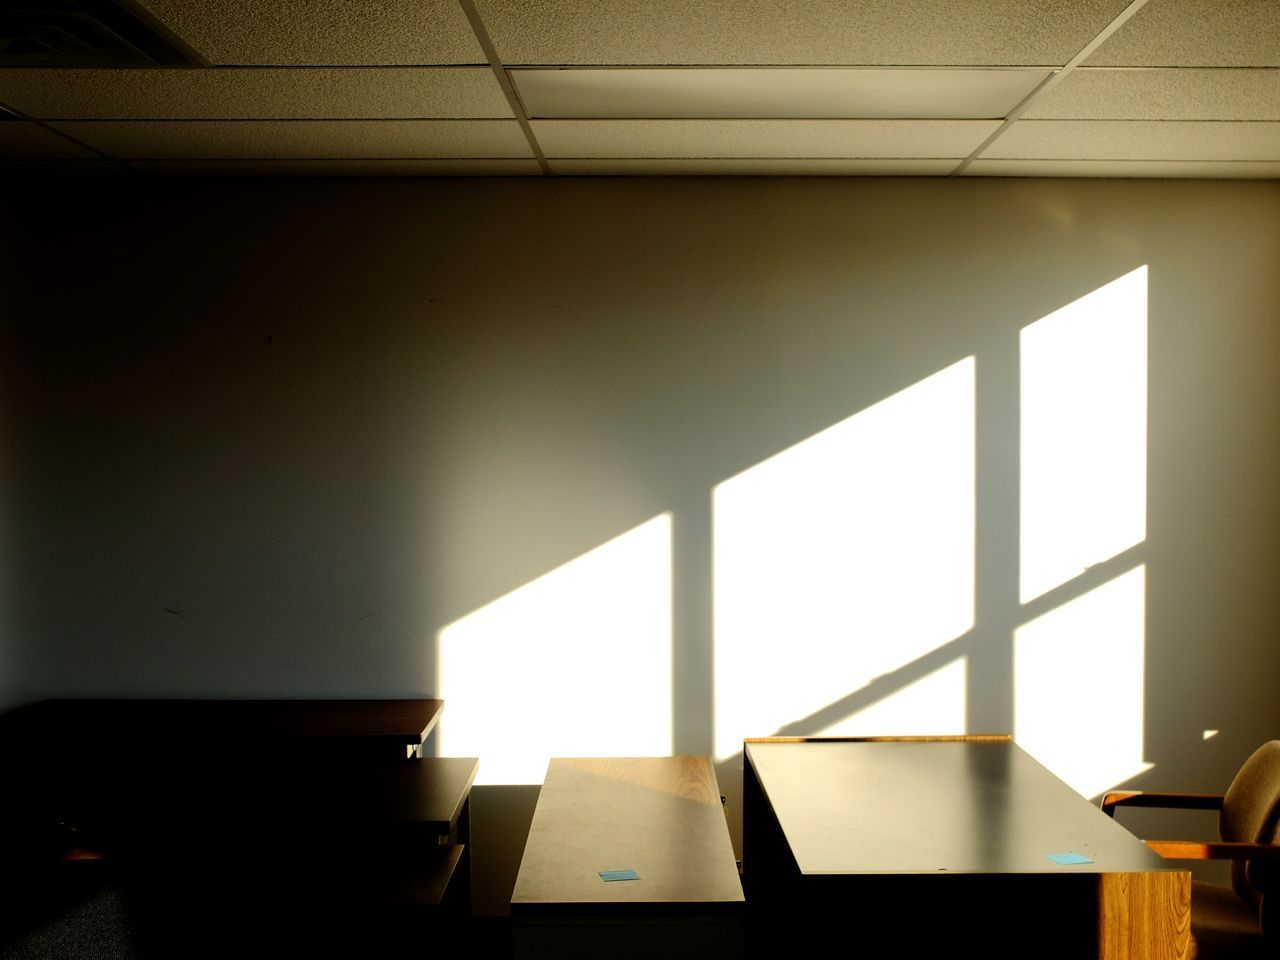 Light traveling across the wall. Darkness And Light Light And Shadow Creative Light And Shadow Interior _ Interior Views